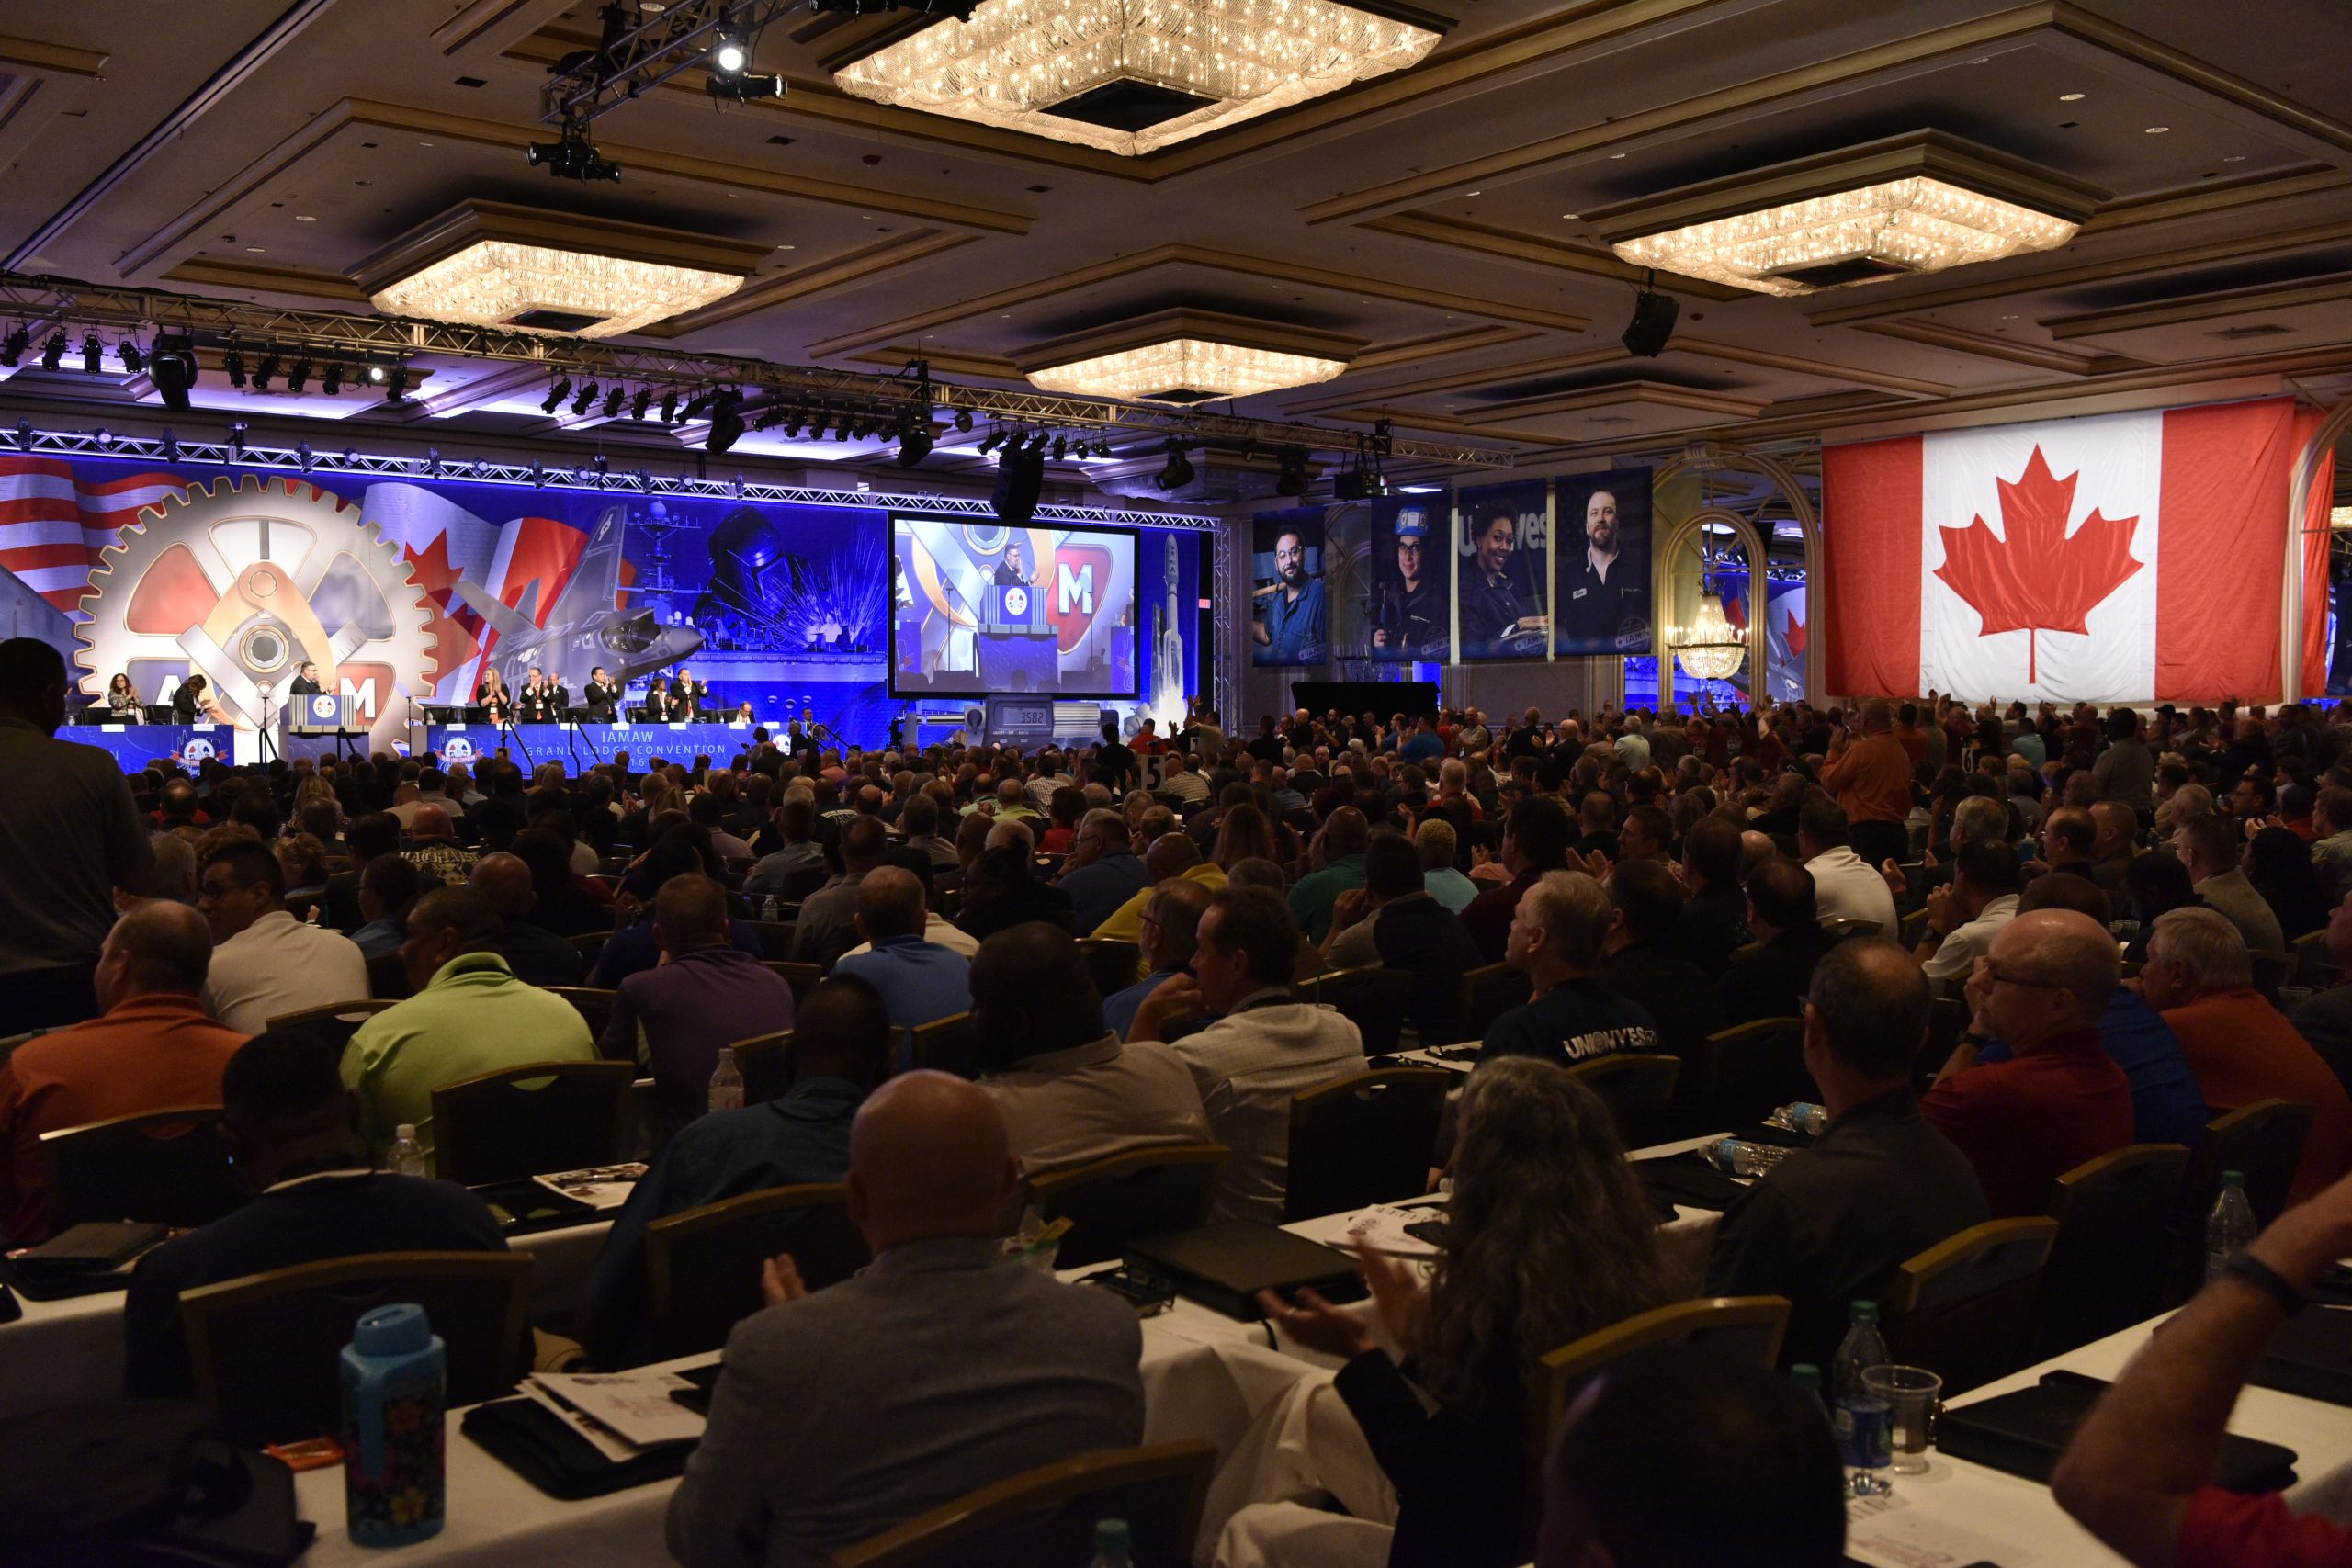 Machinists Union Postpones 40th Grand Lodge Convention to 2022